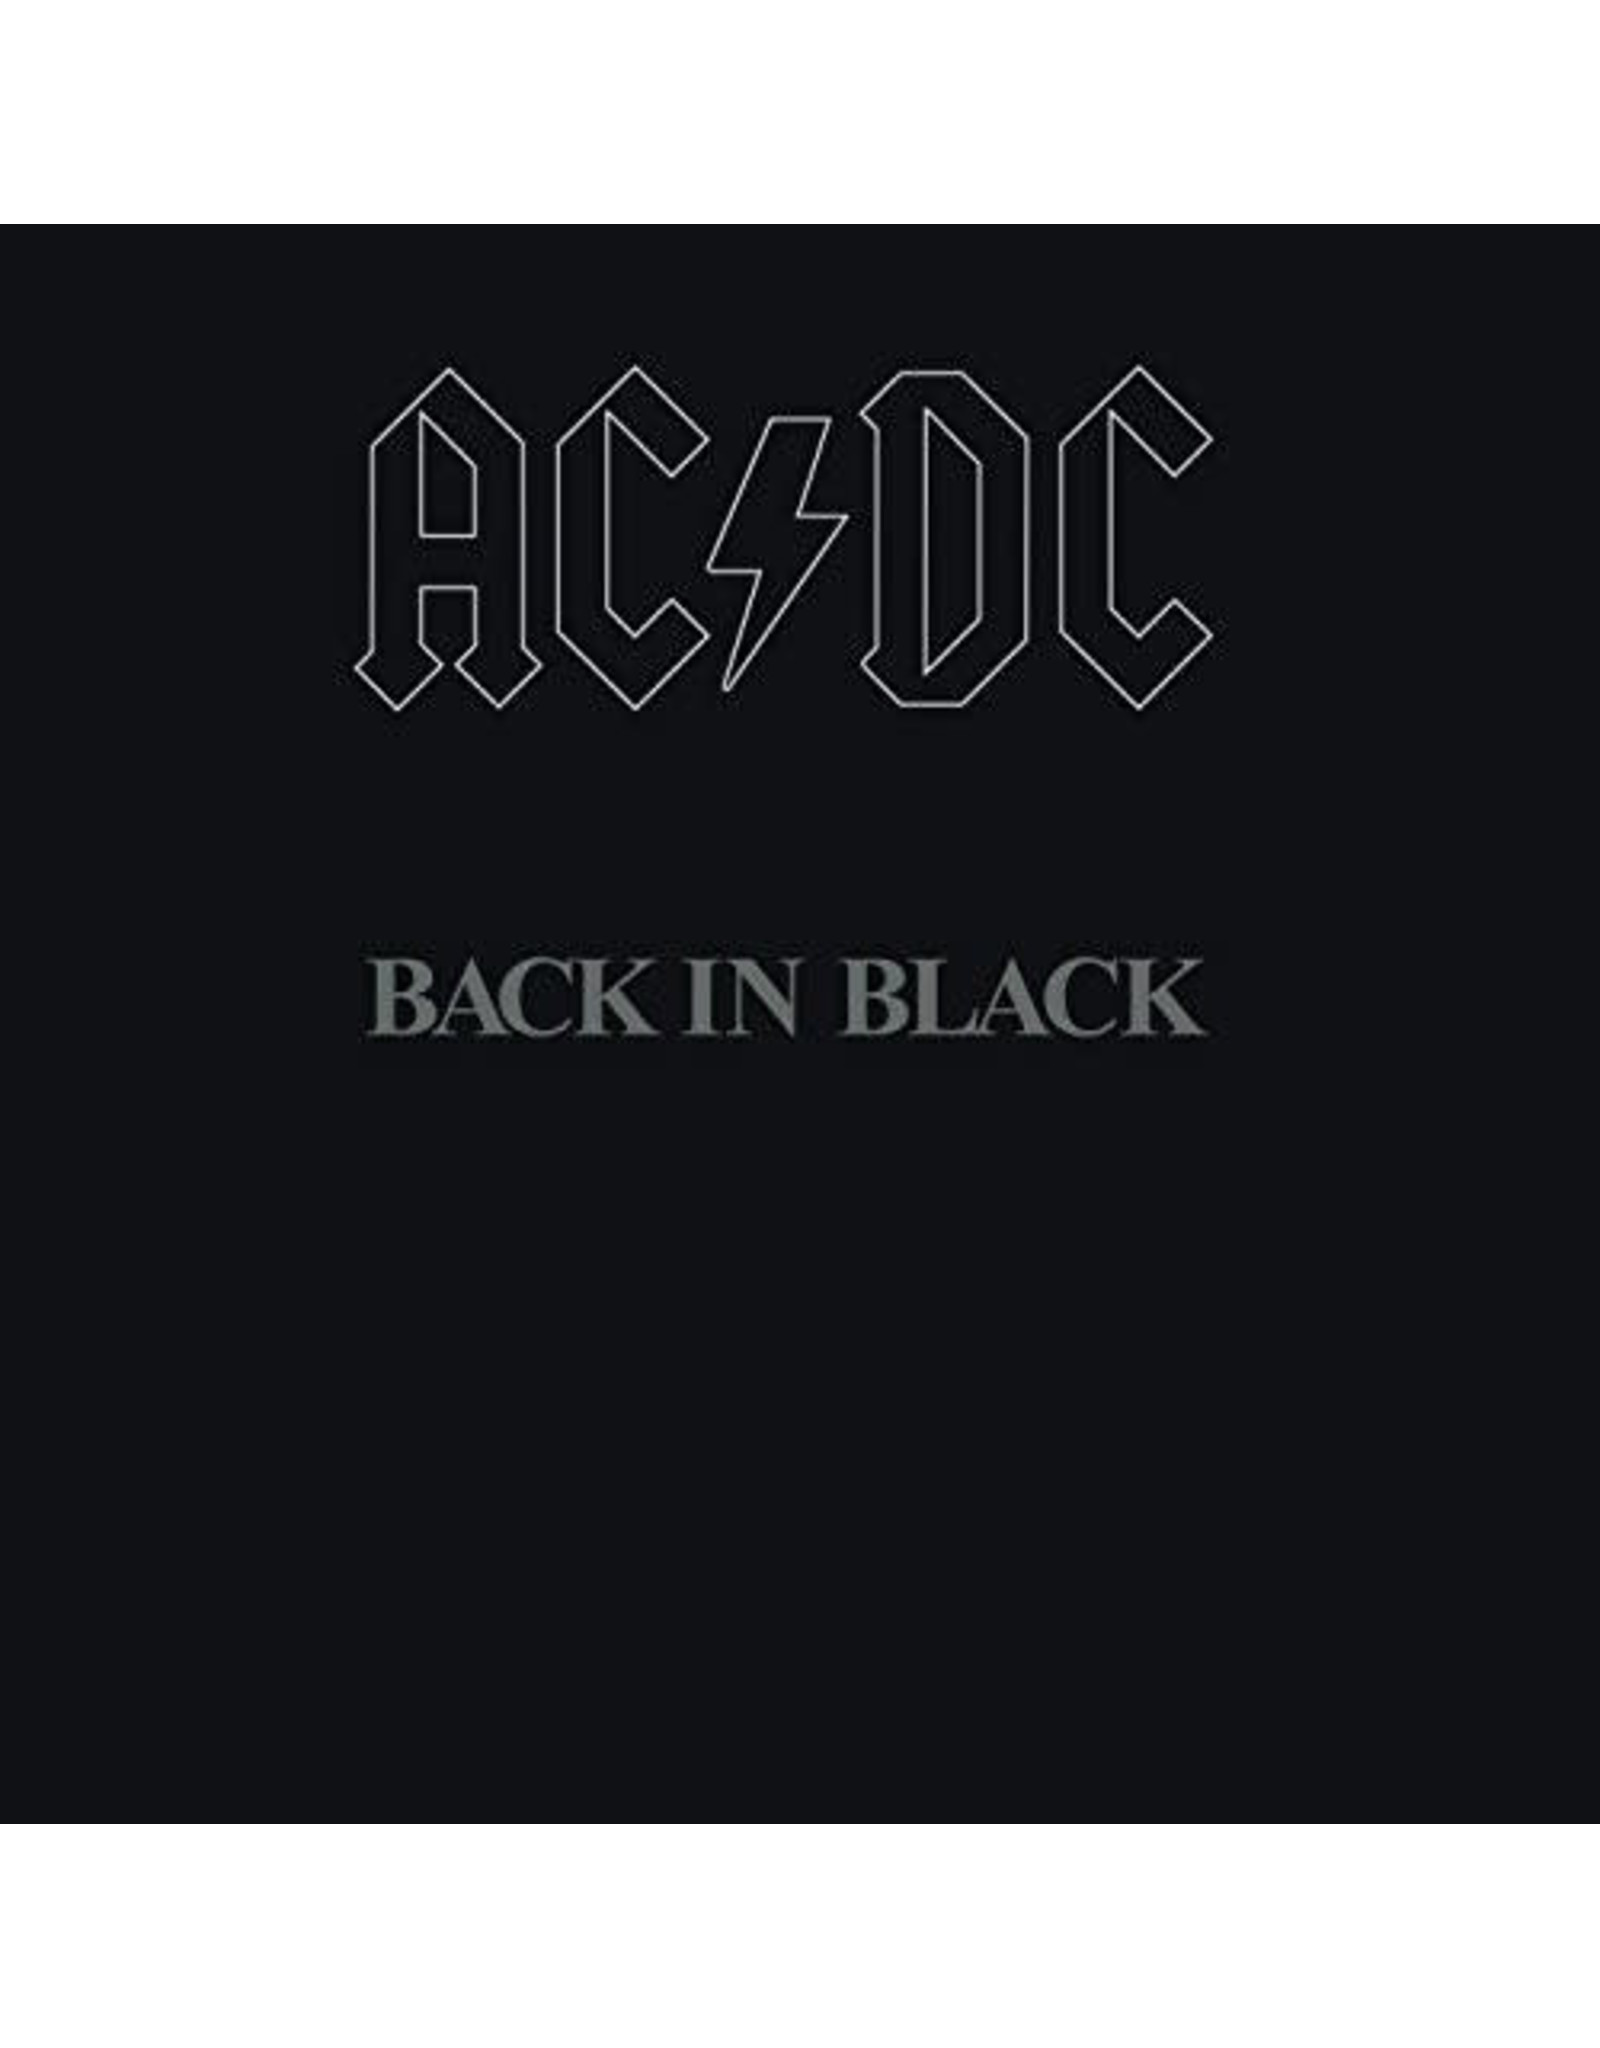 New Vinyl AC/DC - Back In Black LP